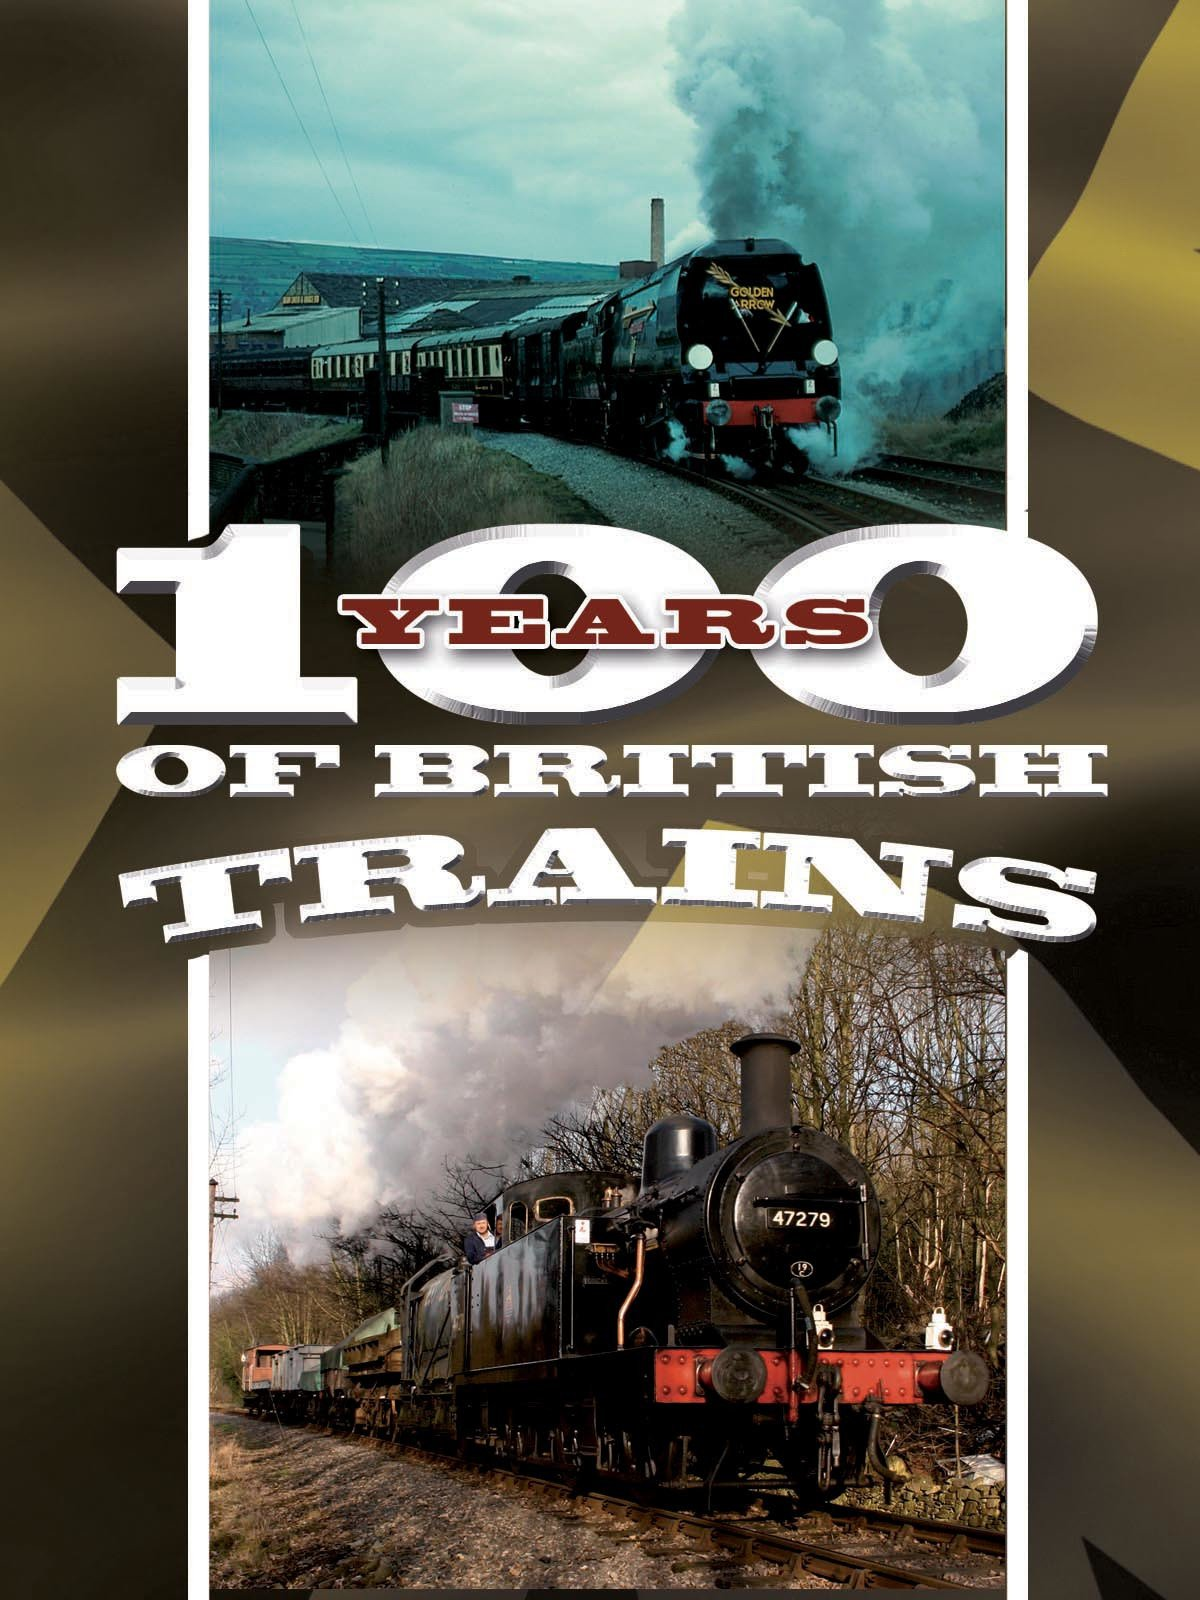 100 Years of British Trains